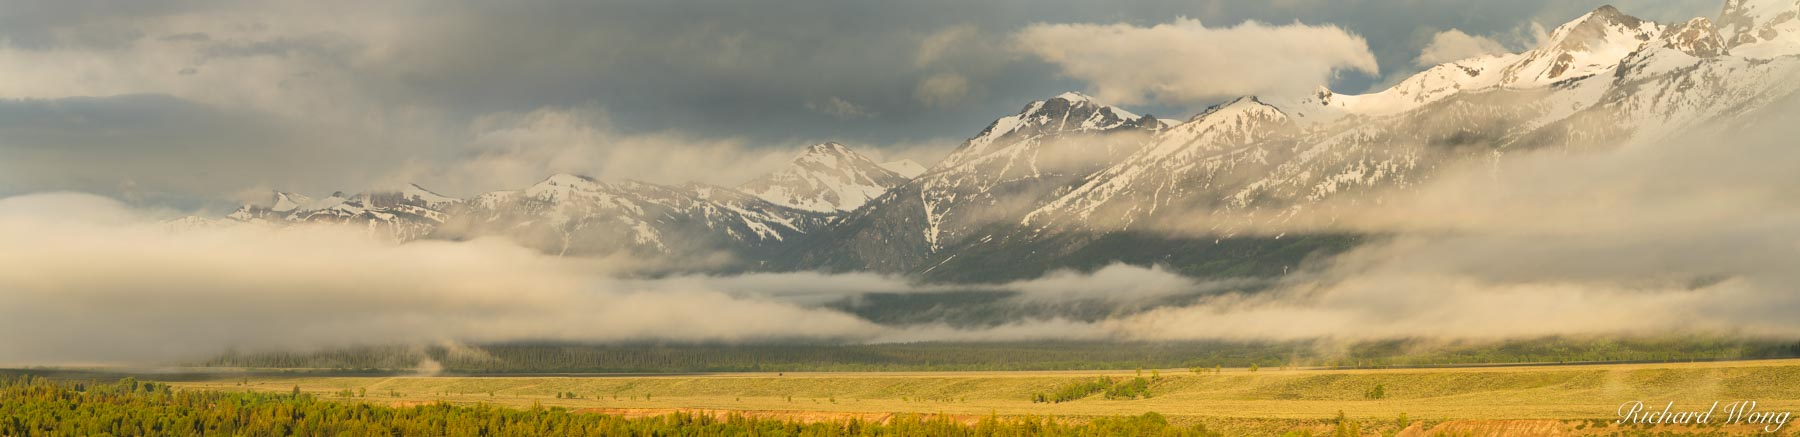 clouds, grand teton national park, landscape, national park system, nature, north america, np, nps, outdoors, outside, pano, panorama, panoramic, rocky mountains, scenery, scenic, sunrise, teton point, photo